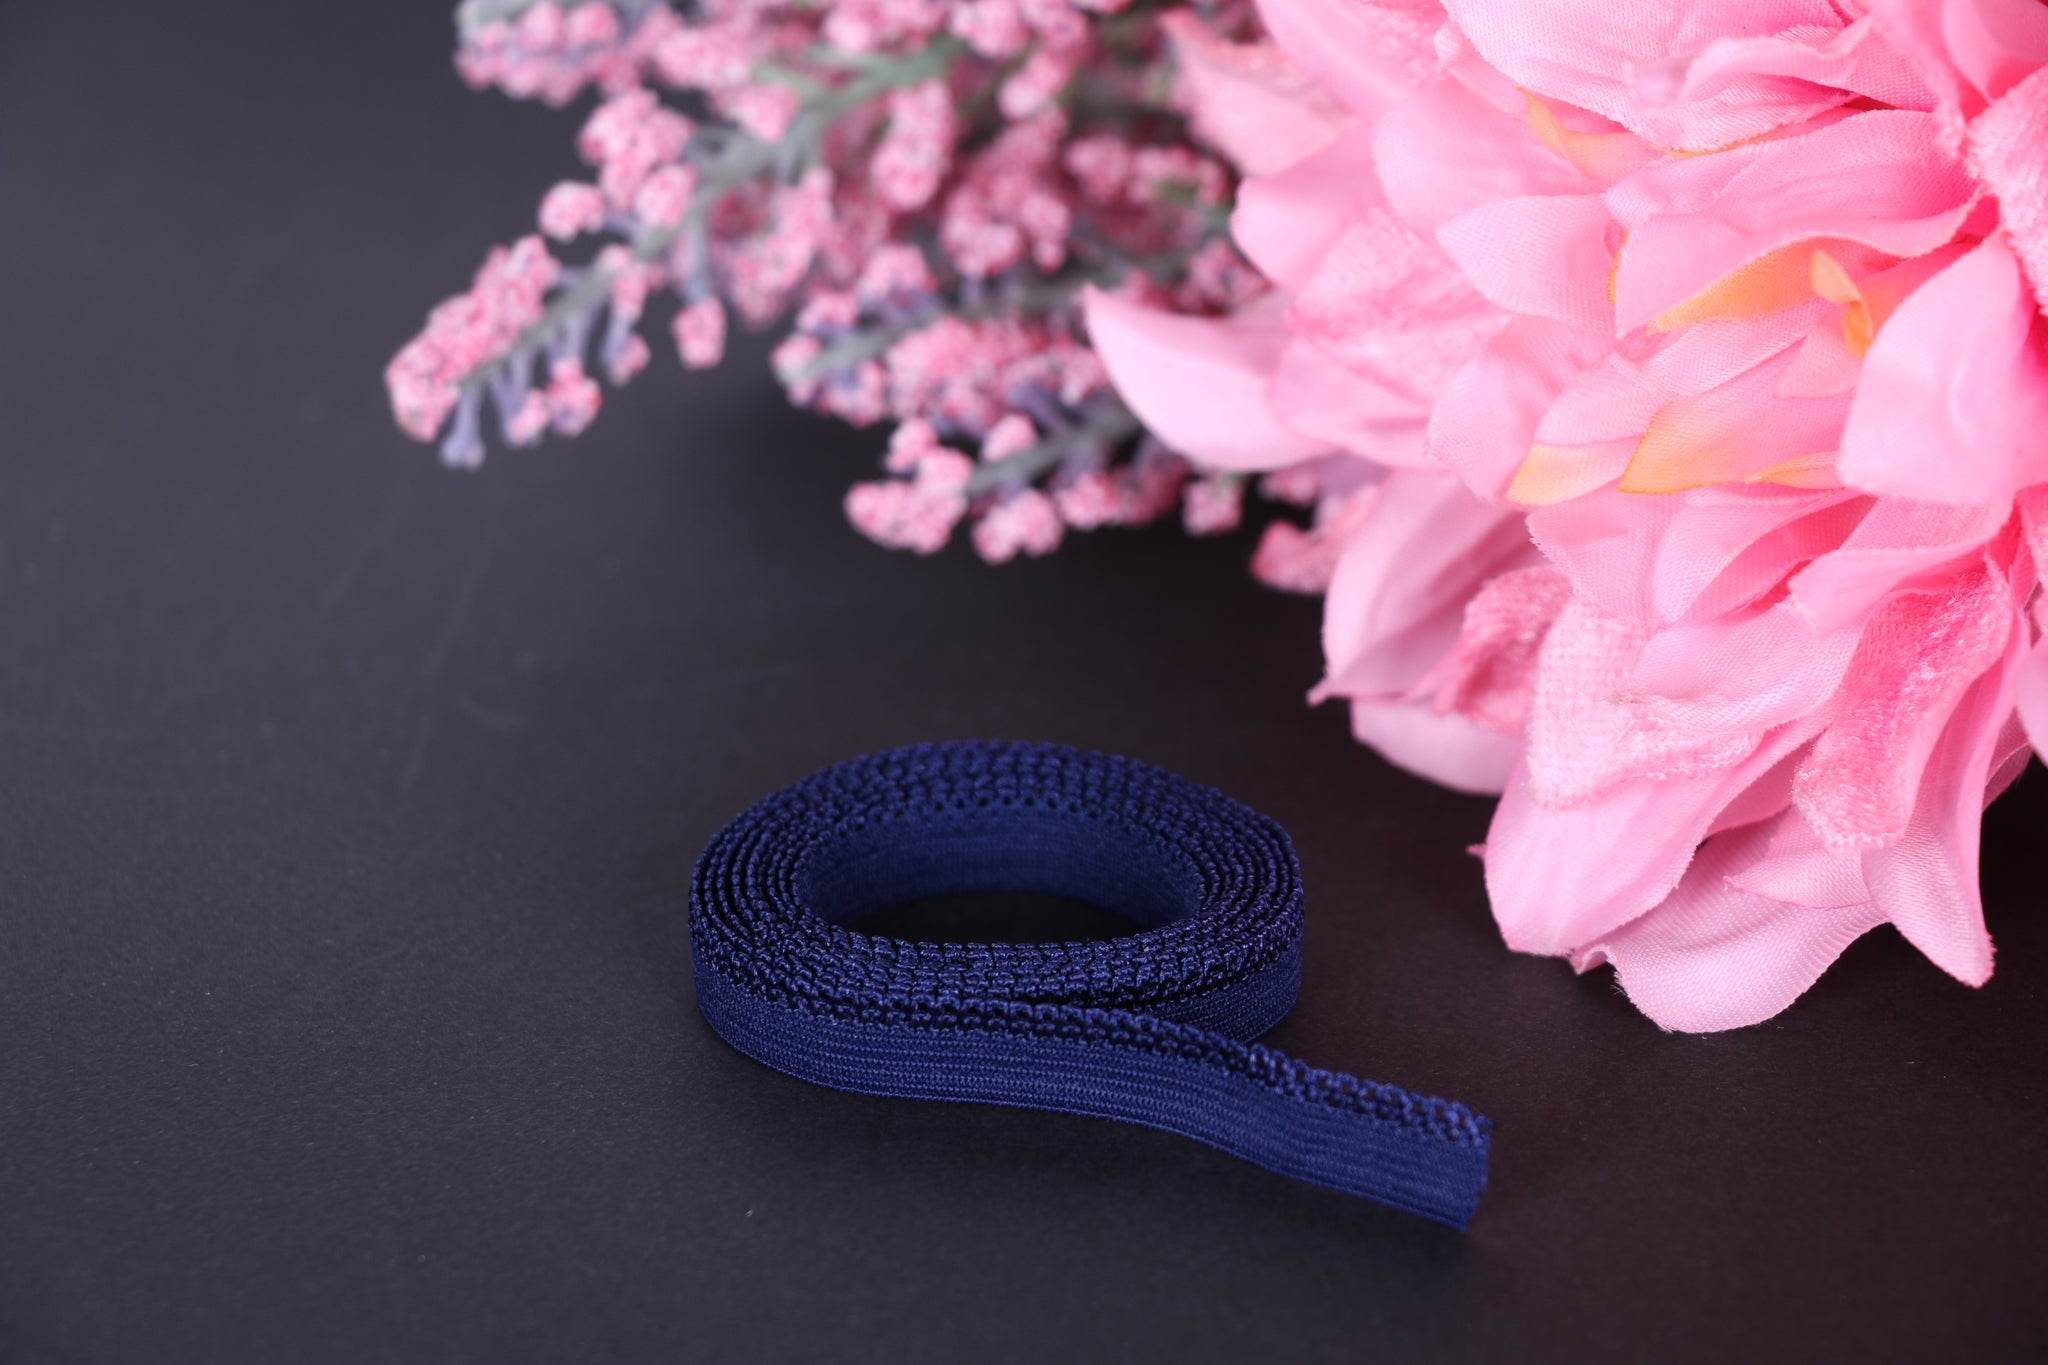 Navy panty picot elastic - Elastics for bra making lingerie making